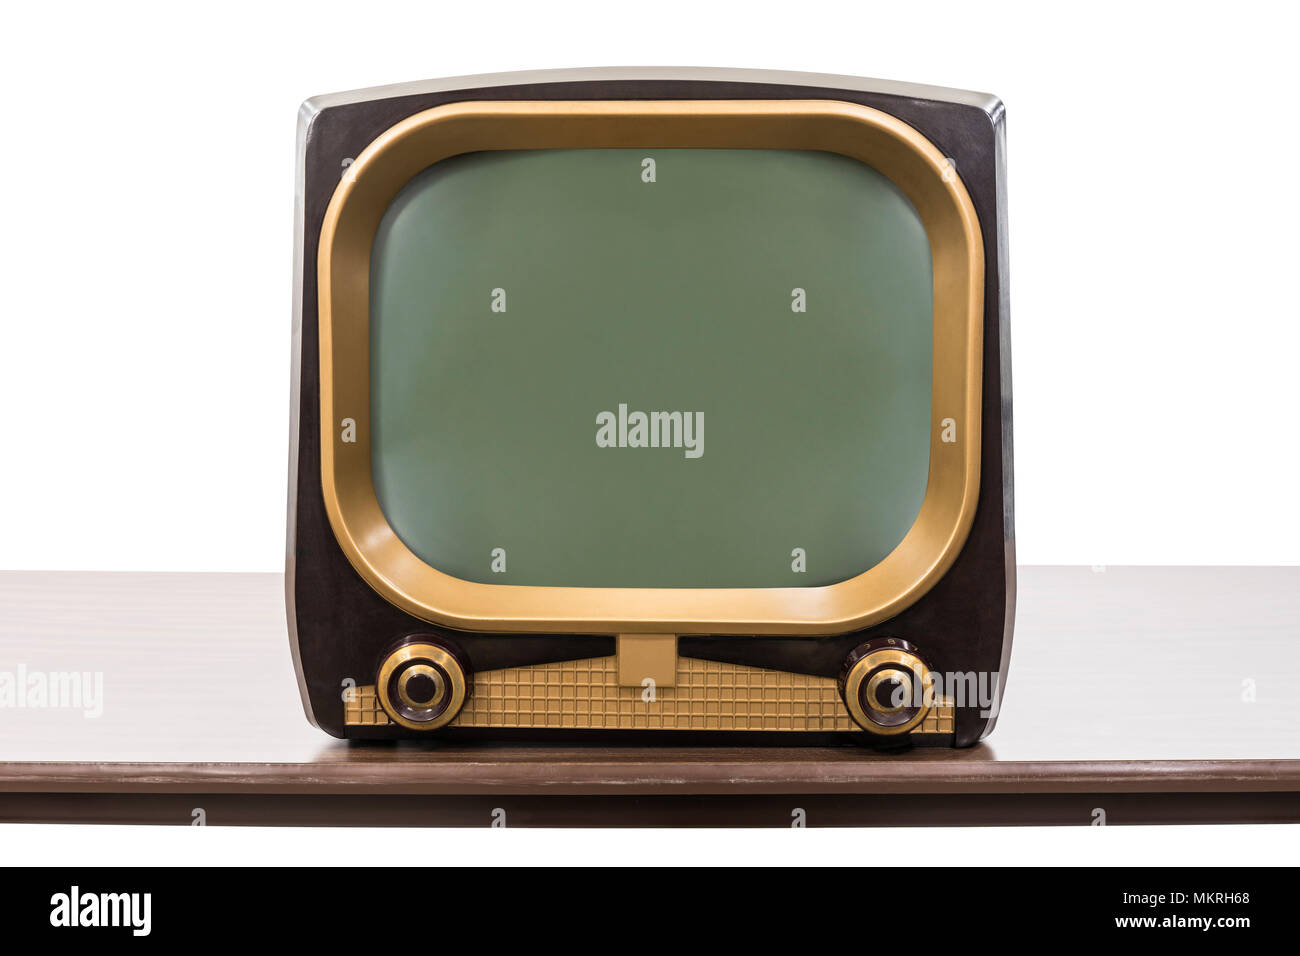 Vintage 1950s television on table isolated on white with clipping path. - Stock Image